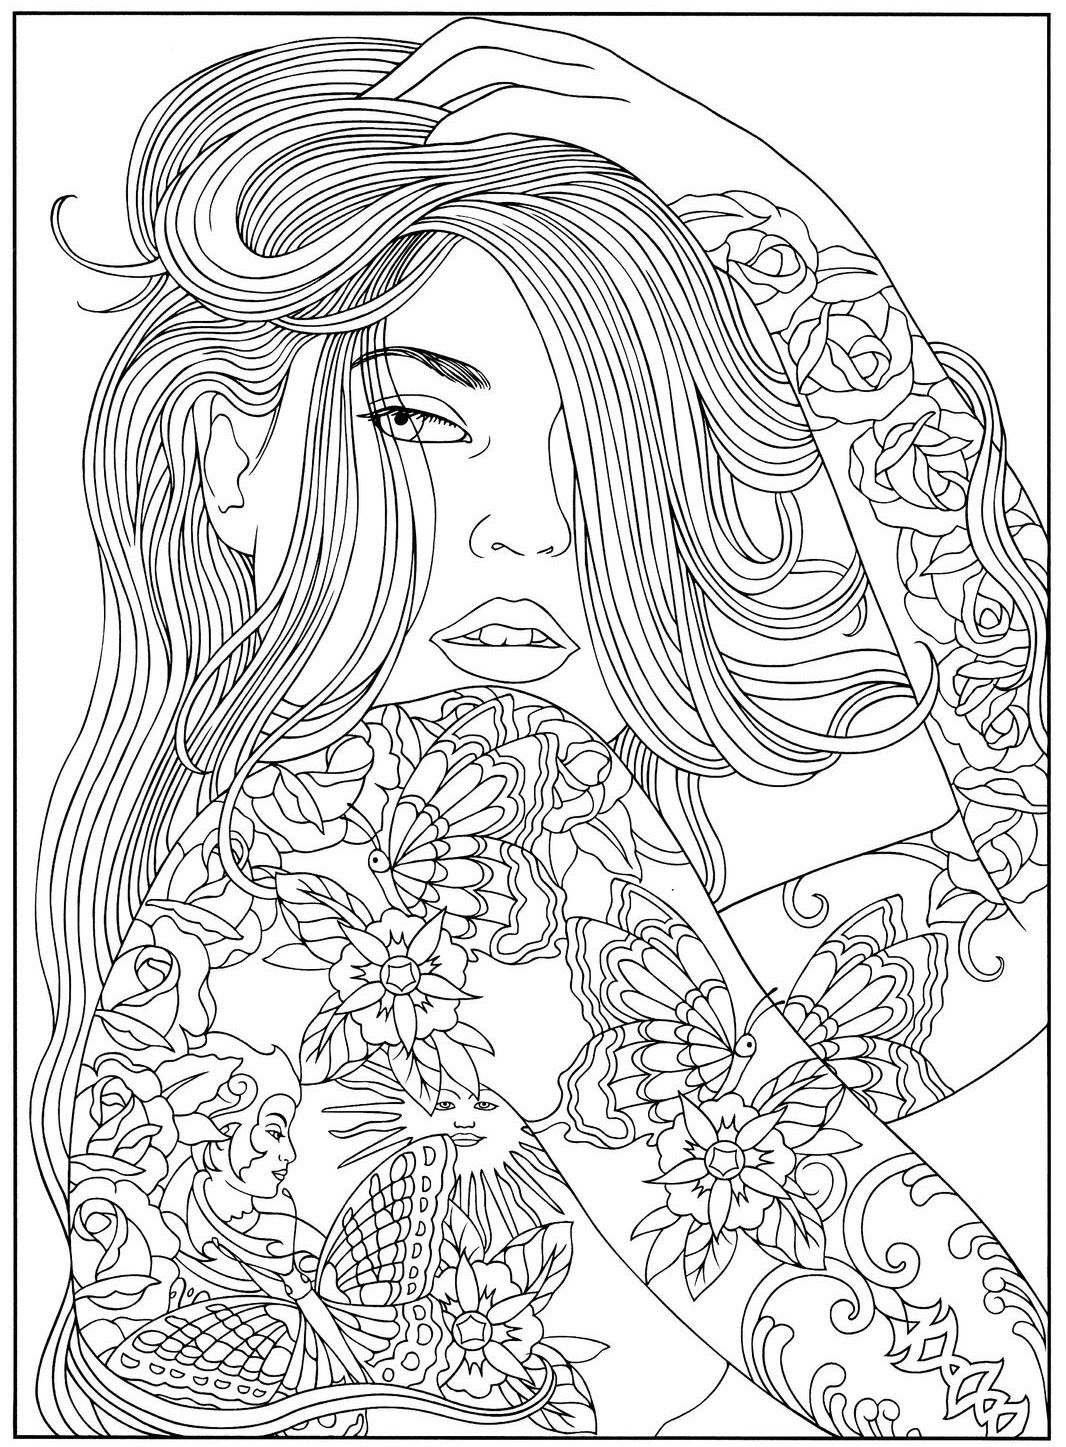 Unclassifiable Coloring Pages For Adults Doodle Coloring Abstract Coloring Pages Cute Coloring Pages